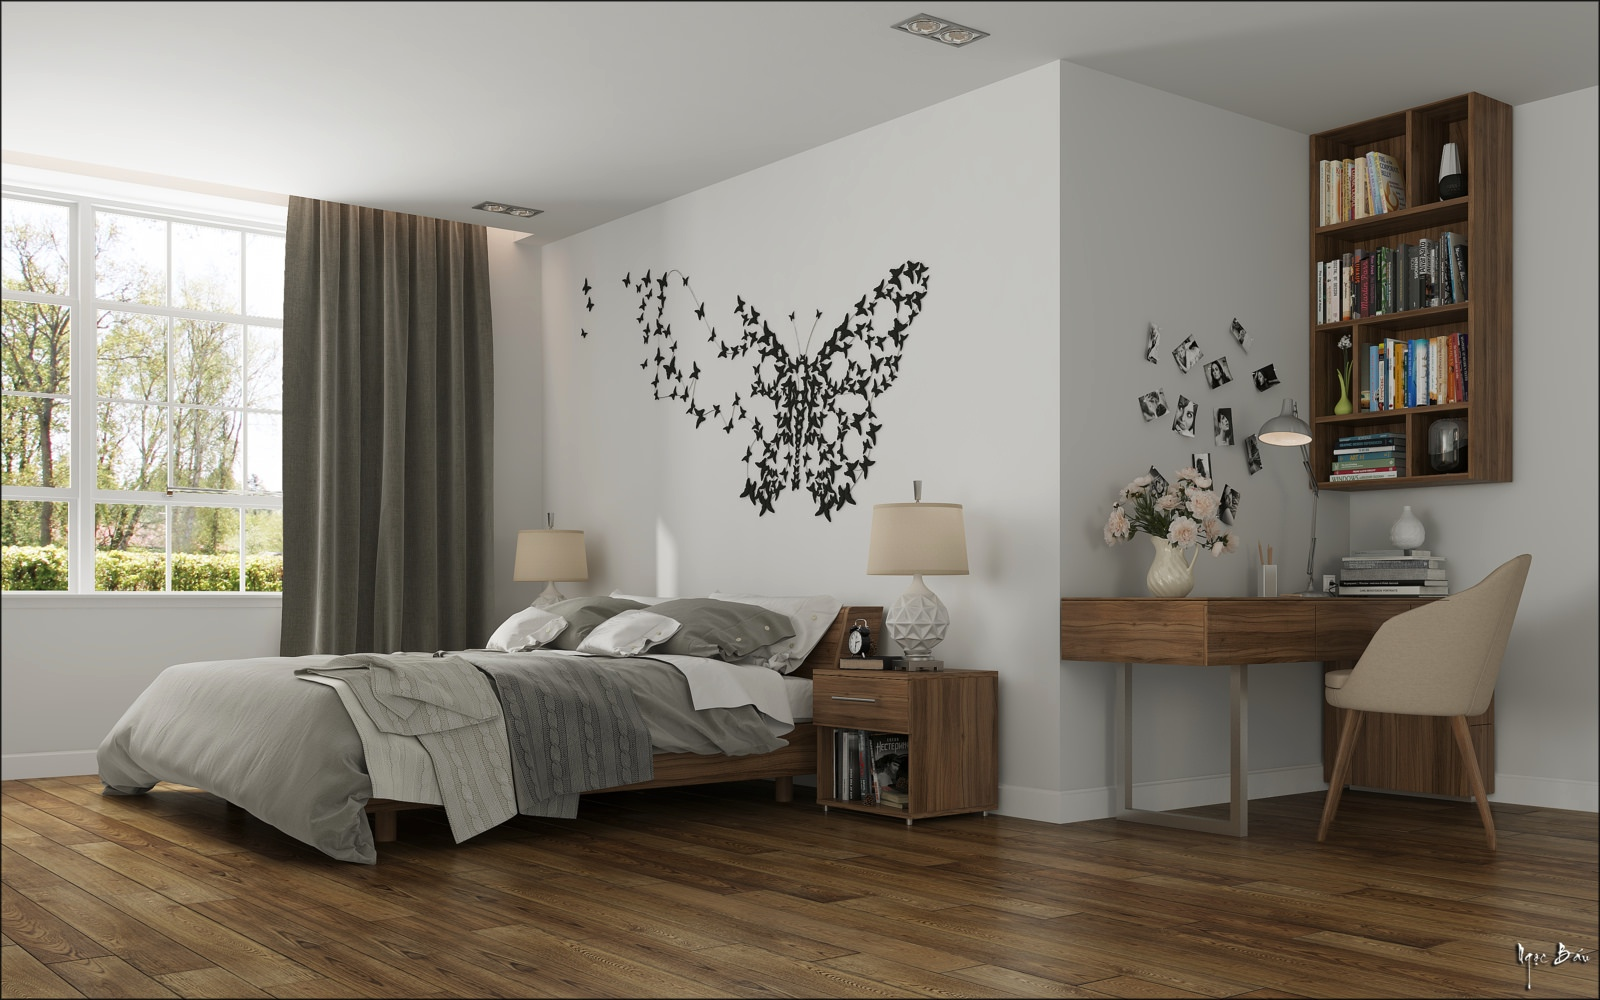 Bedroom butterfly wall art interior design ideas for Interior designs for bedrooms ideas